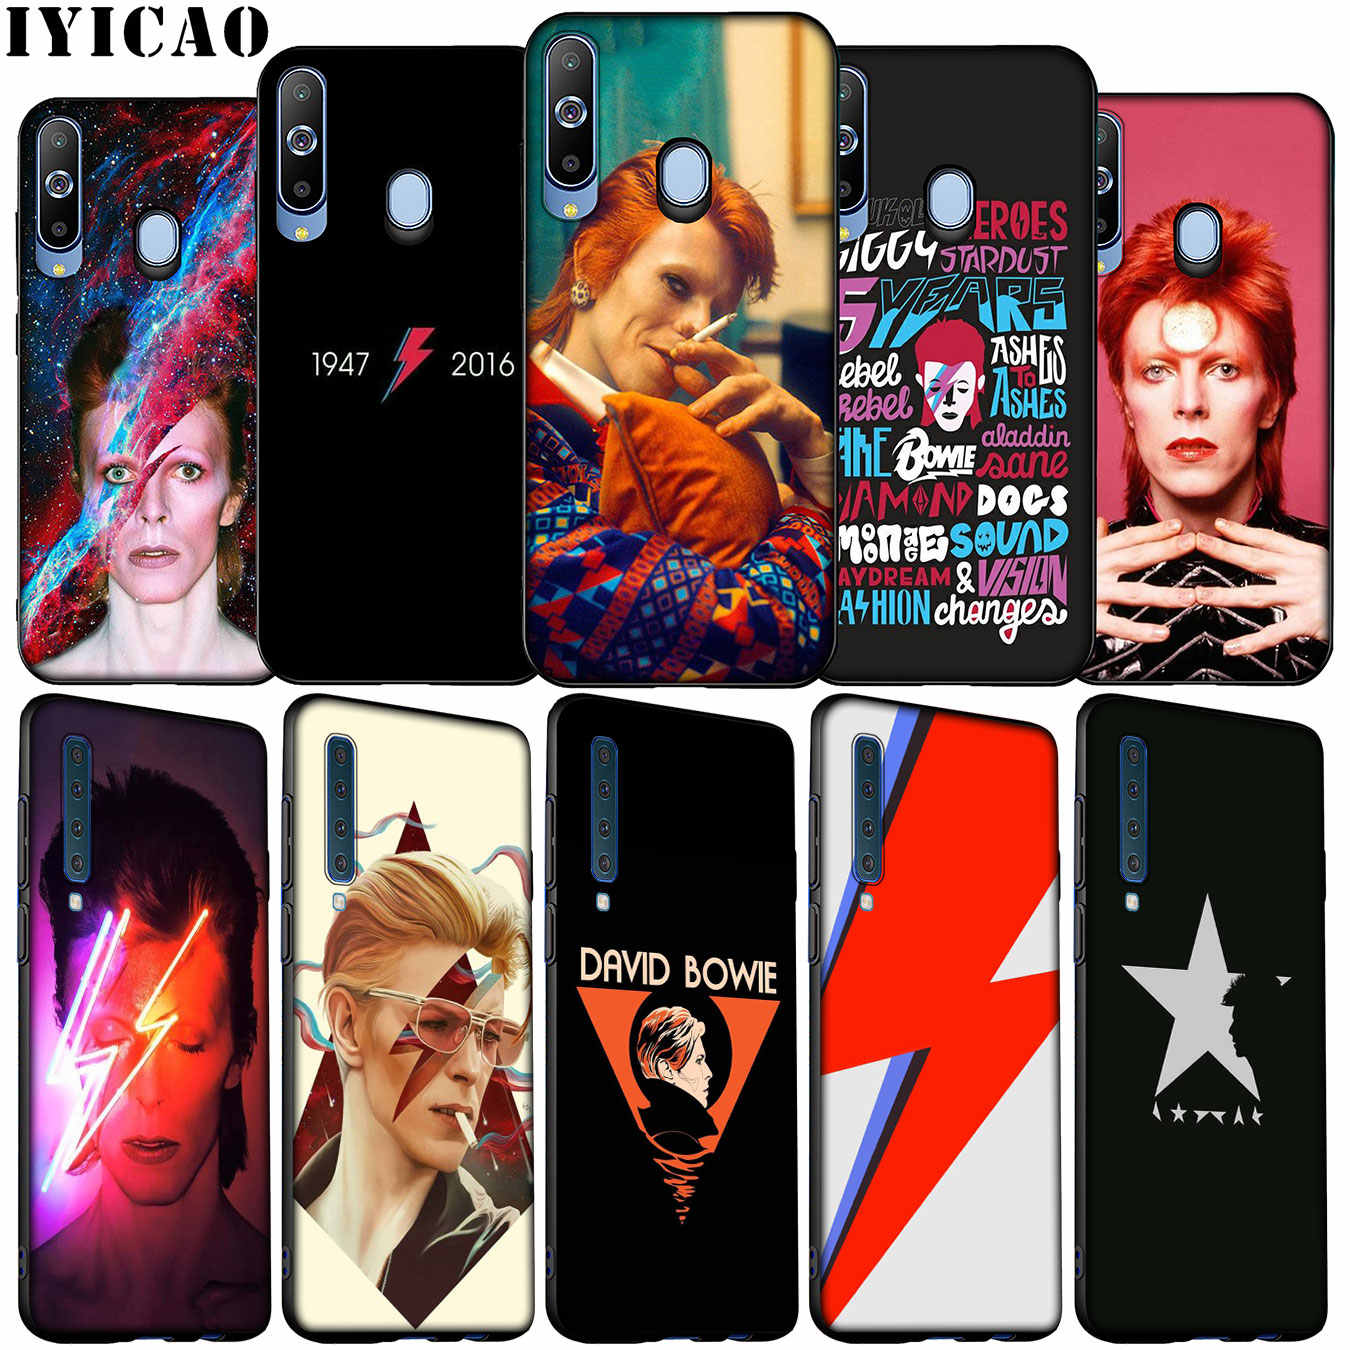 IYICAO mode David Bowie Weiche Silikon Fall für Samsung Galaxy A70 A50 A60 A40 A30 A20 A10 M10 M20 M30 m40 A20E Schwarz Abdeckung